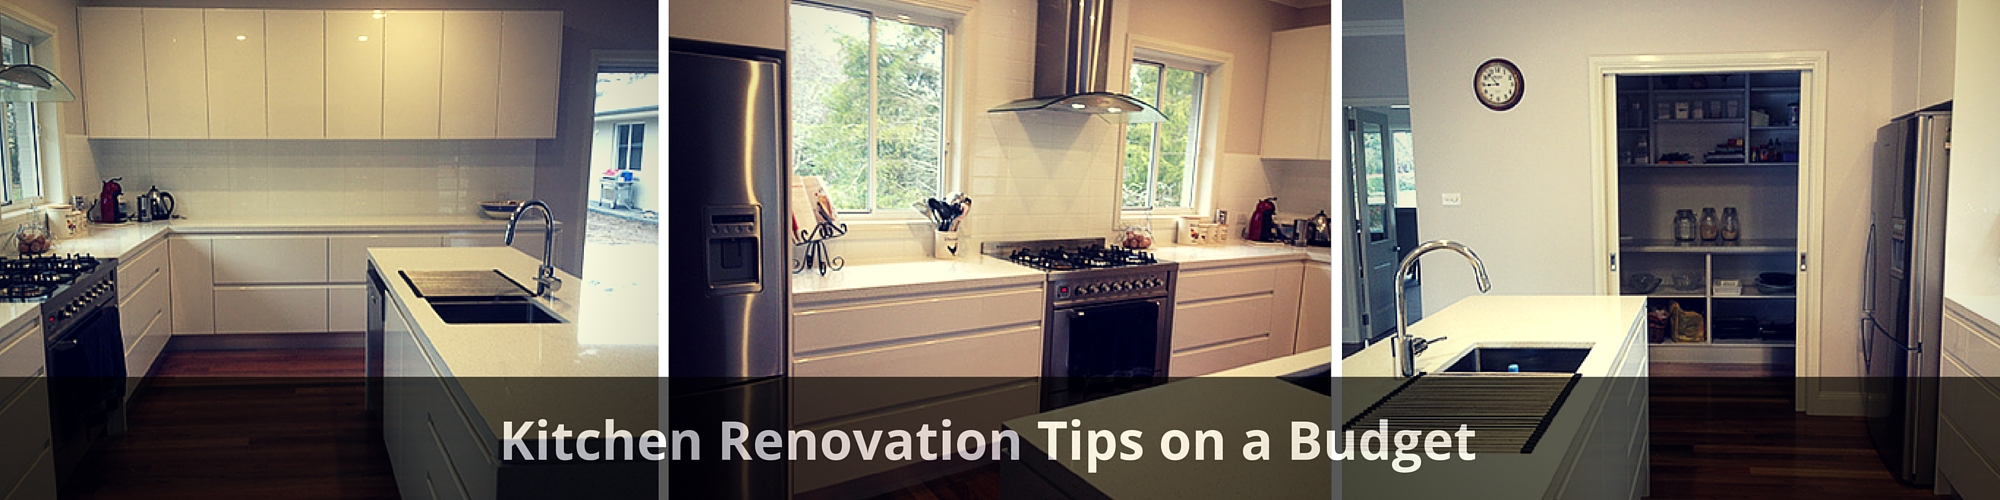 Kitchen renovation tips on a budget by wessam issa for Kitchen renovation ideas on a budget